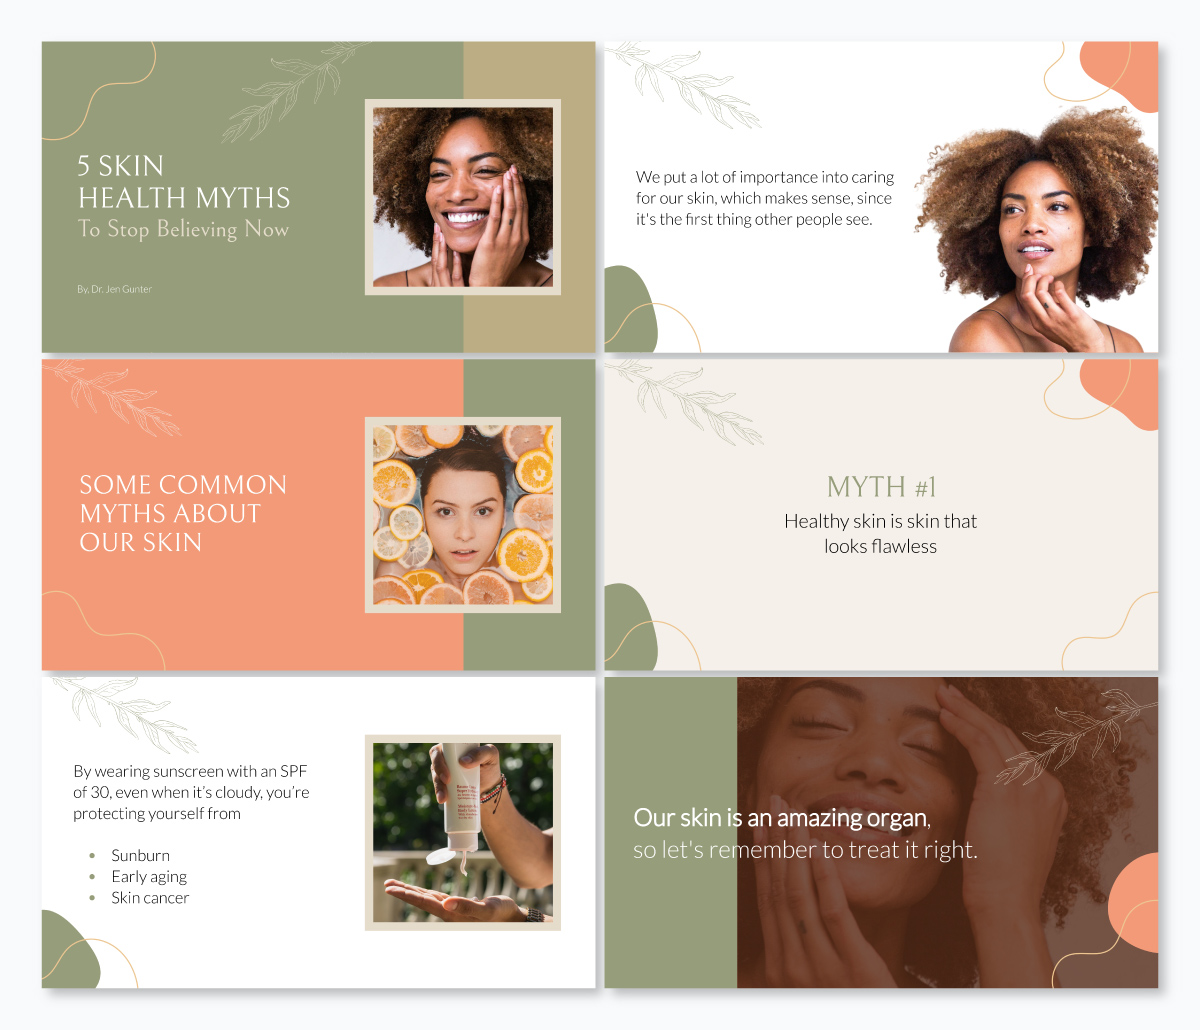 A skincare health keynote template available in Visme.